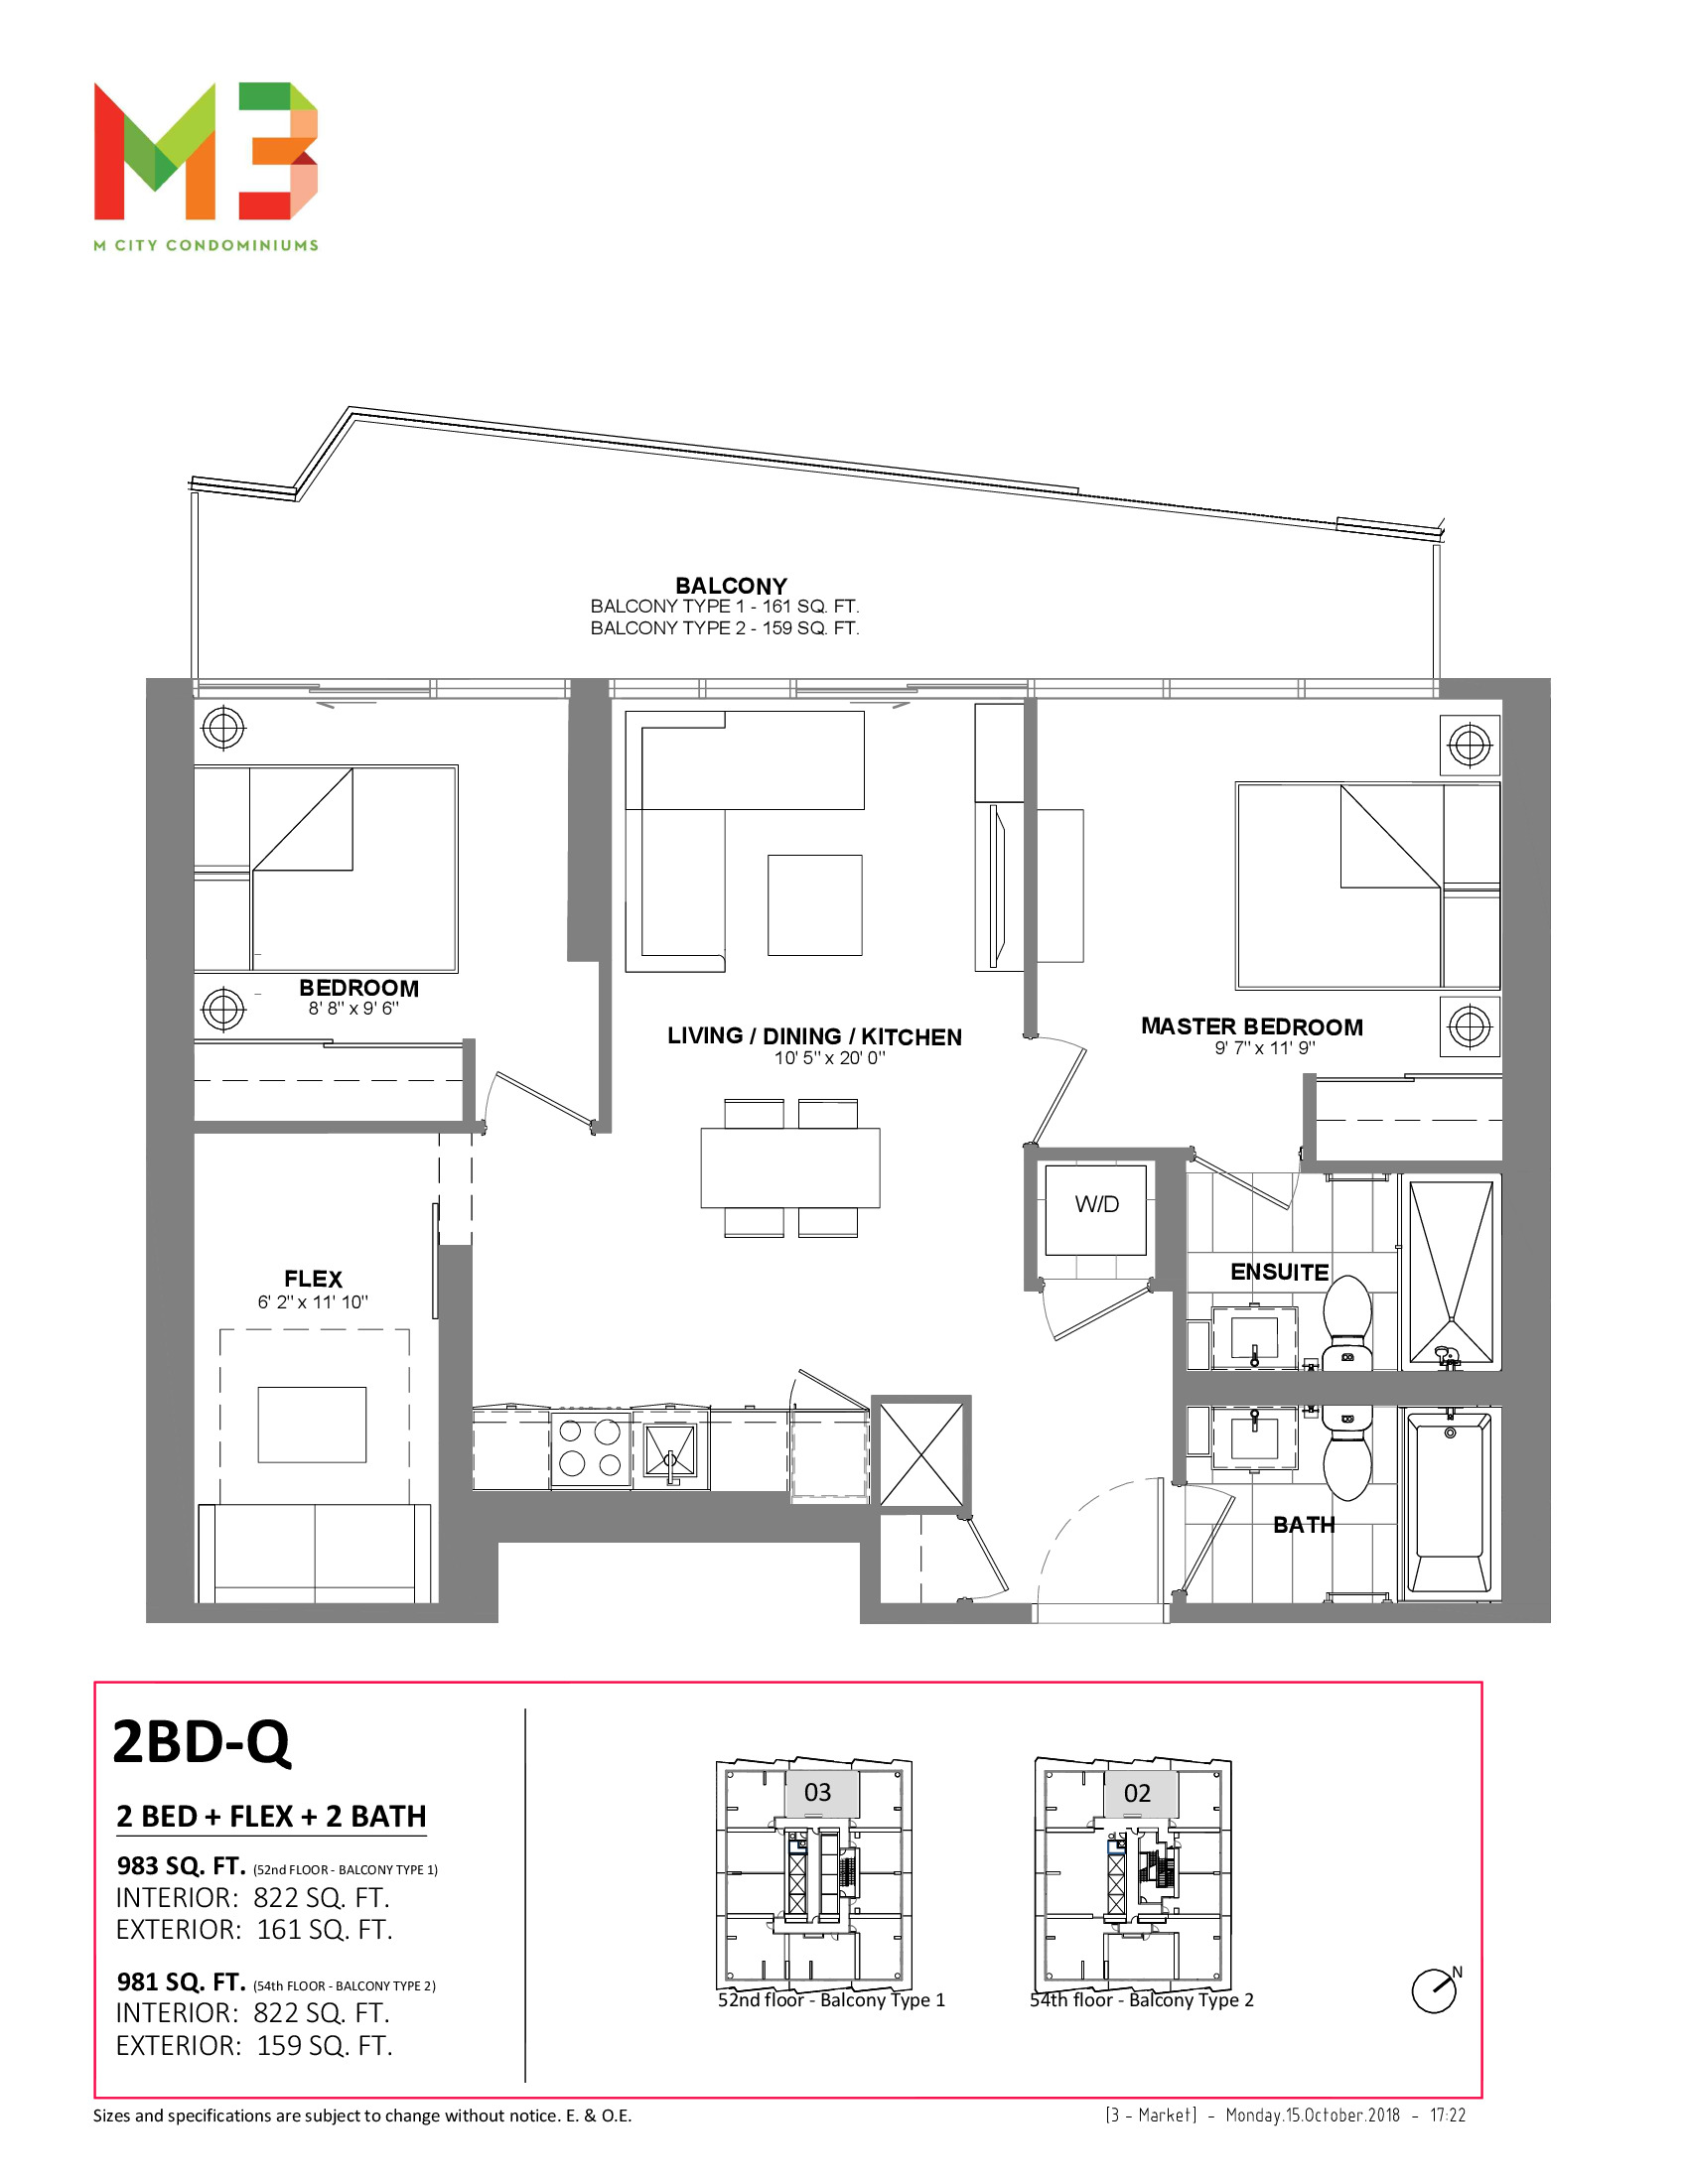 2BD-Q Floor Plan at M3 Condos - 822 sq.ft